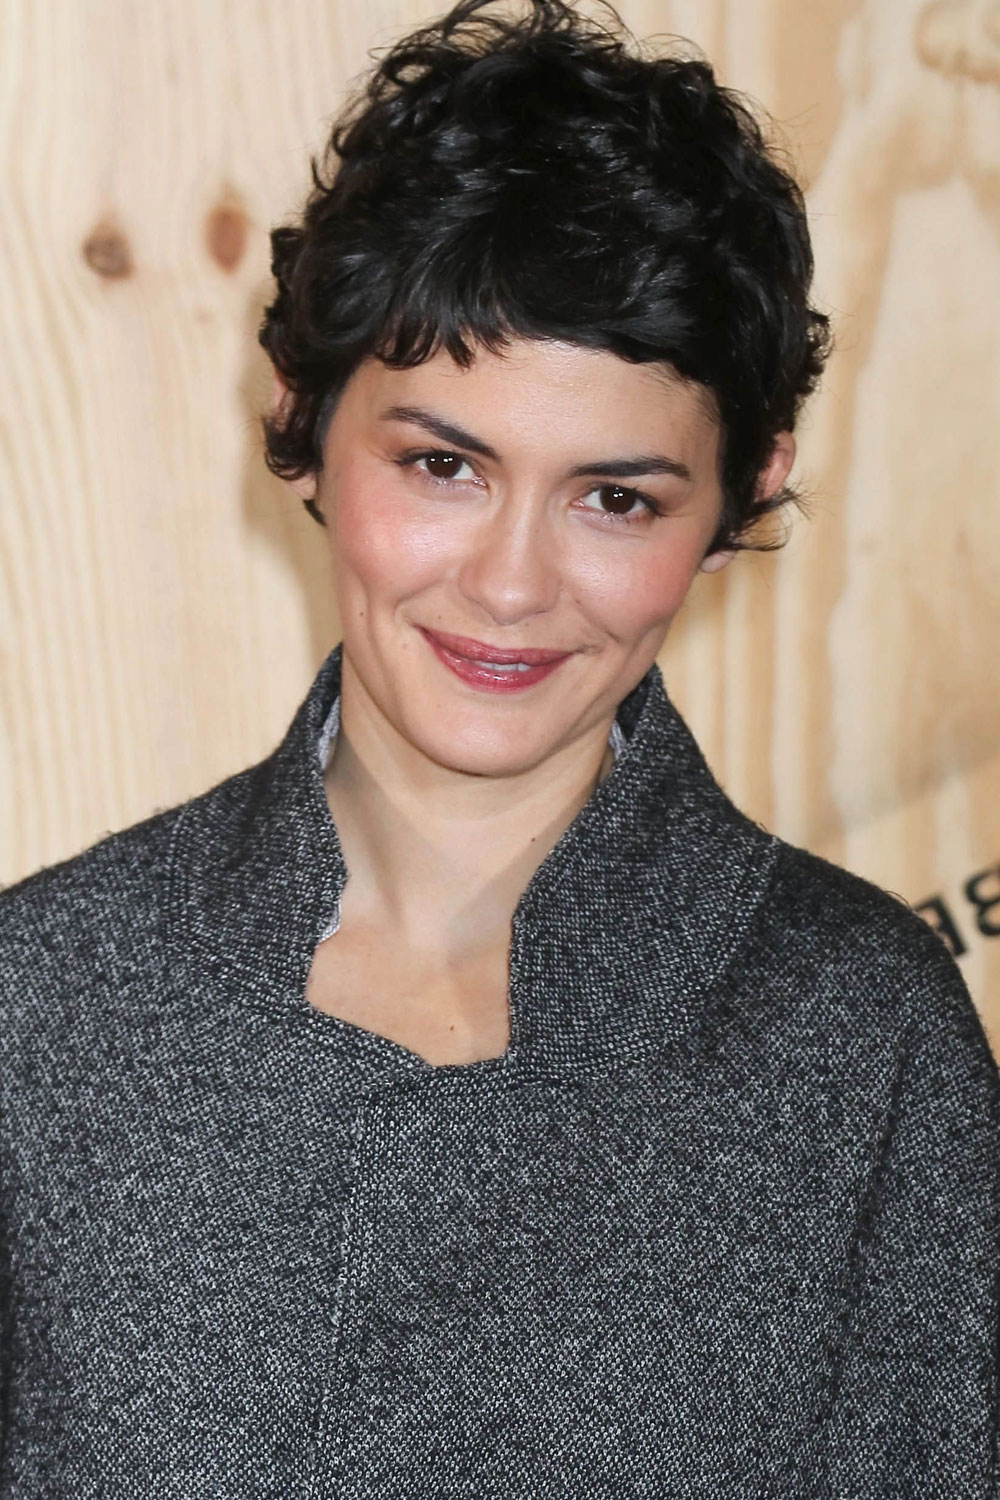 Audrey Tautou With A Messy Pixie Crop – The Hair 100: Top Celebrity Throughout Audrey Tautou Short Haircuts (View 5 of 25)